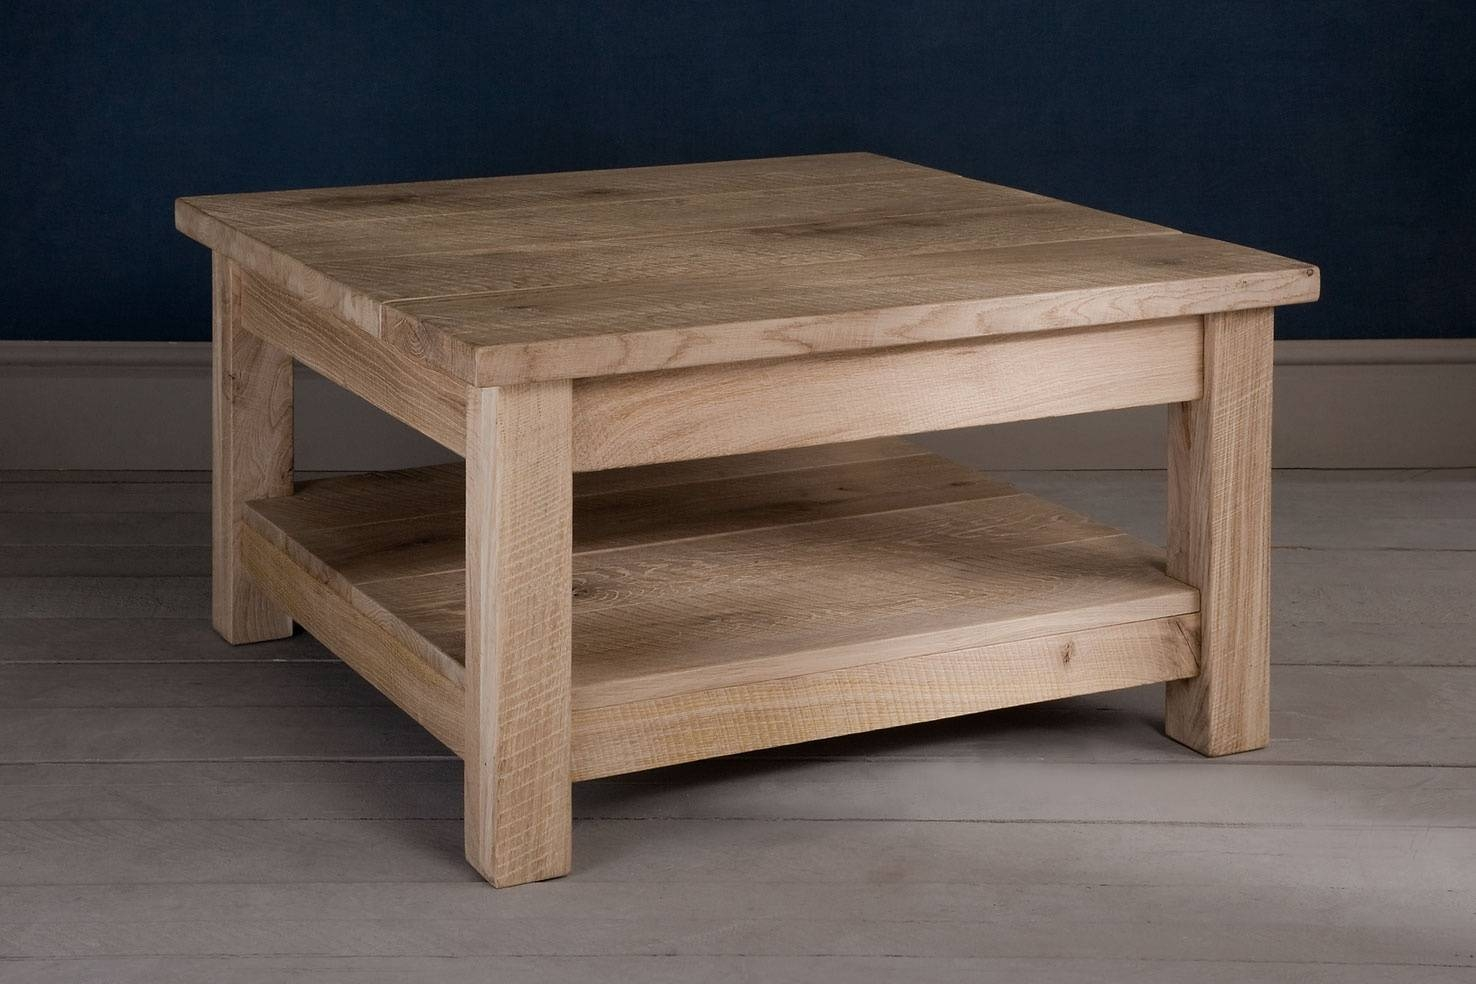 Oak Coffee Tableindigo Furniture intended for Large Oak Coffee Tables (Image 11 of 15)